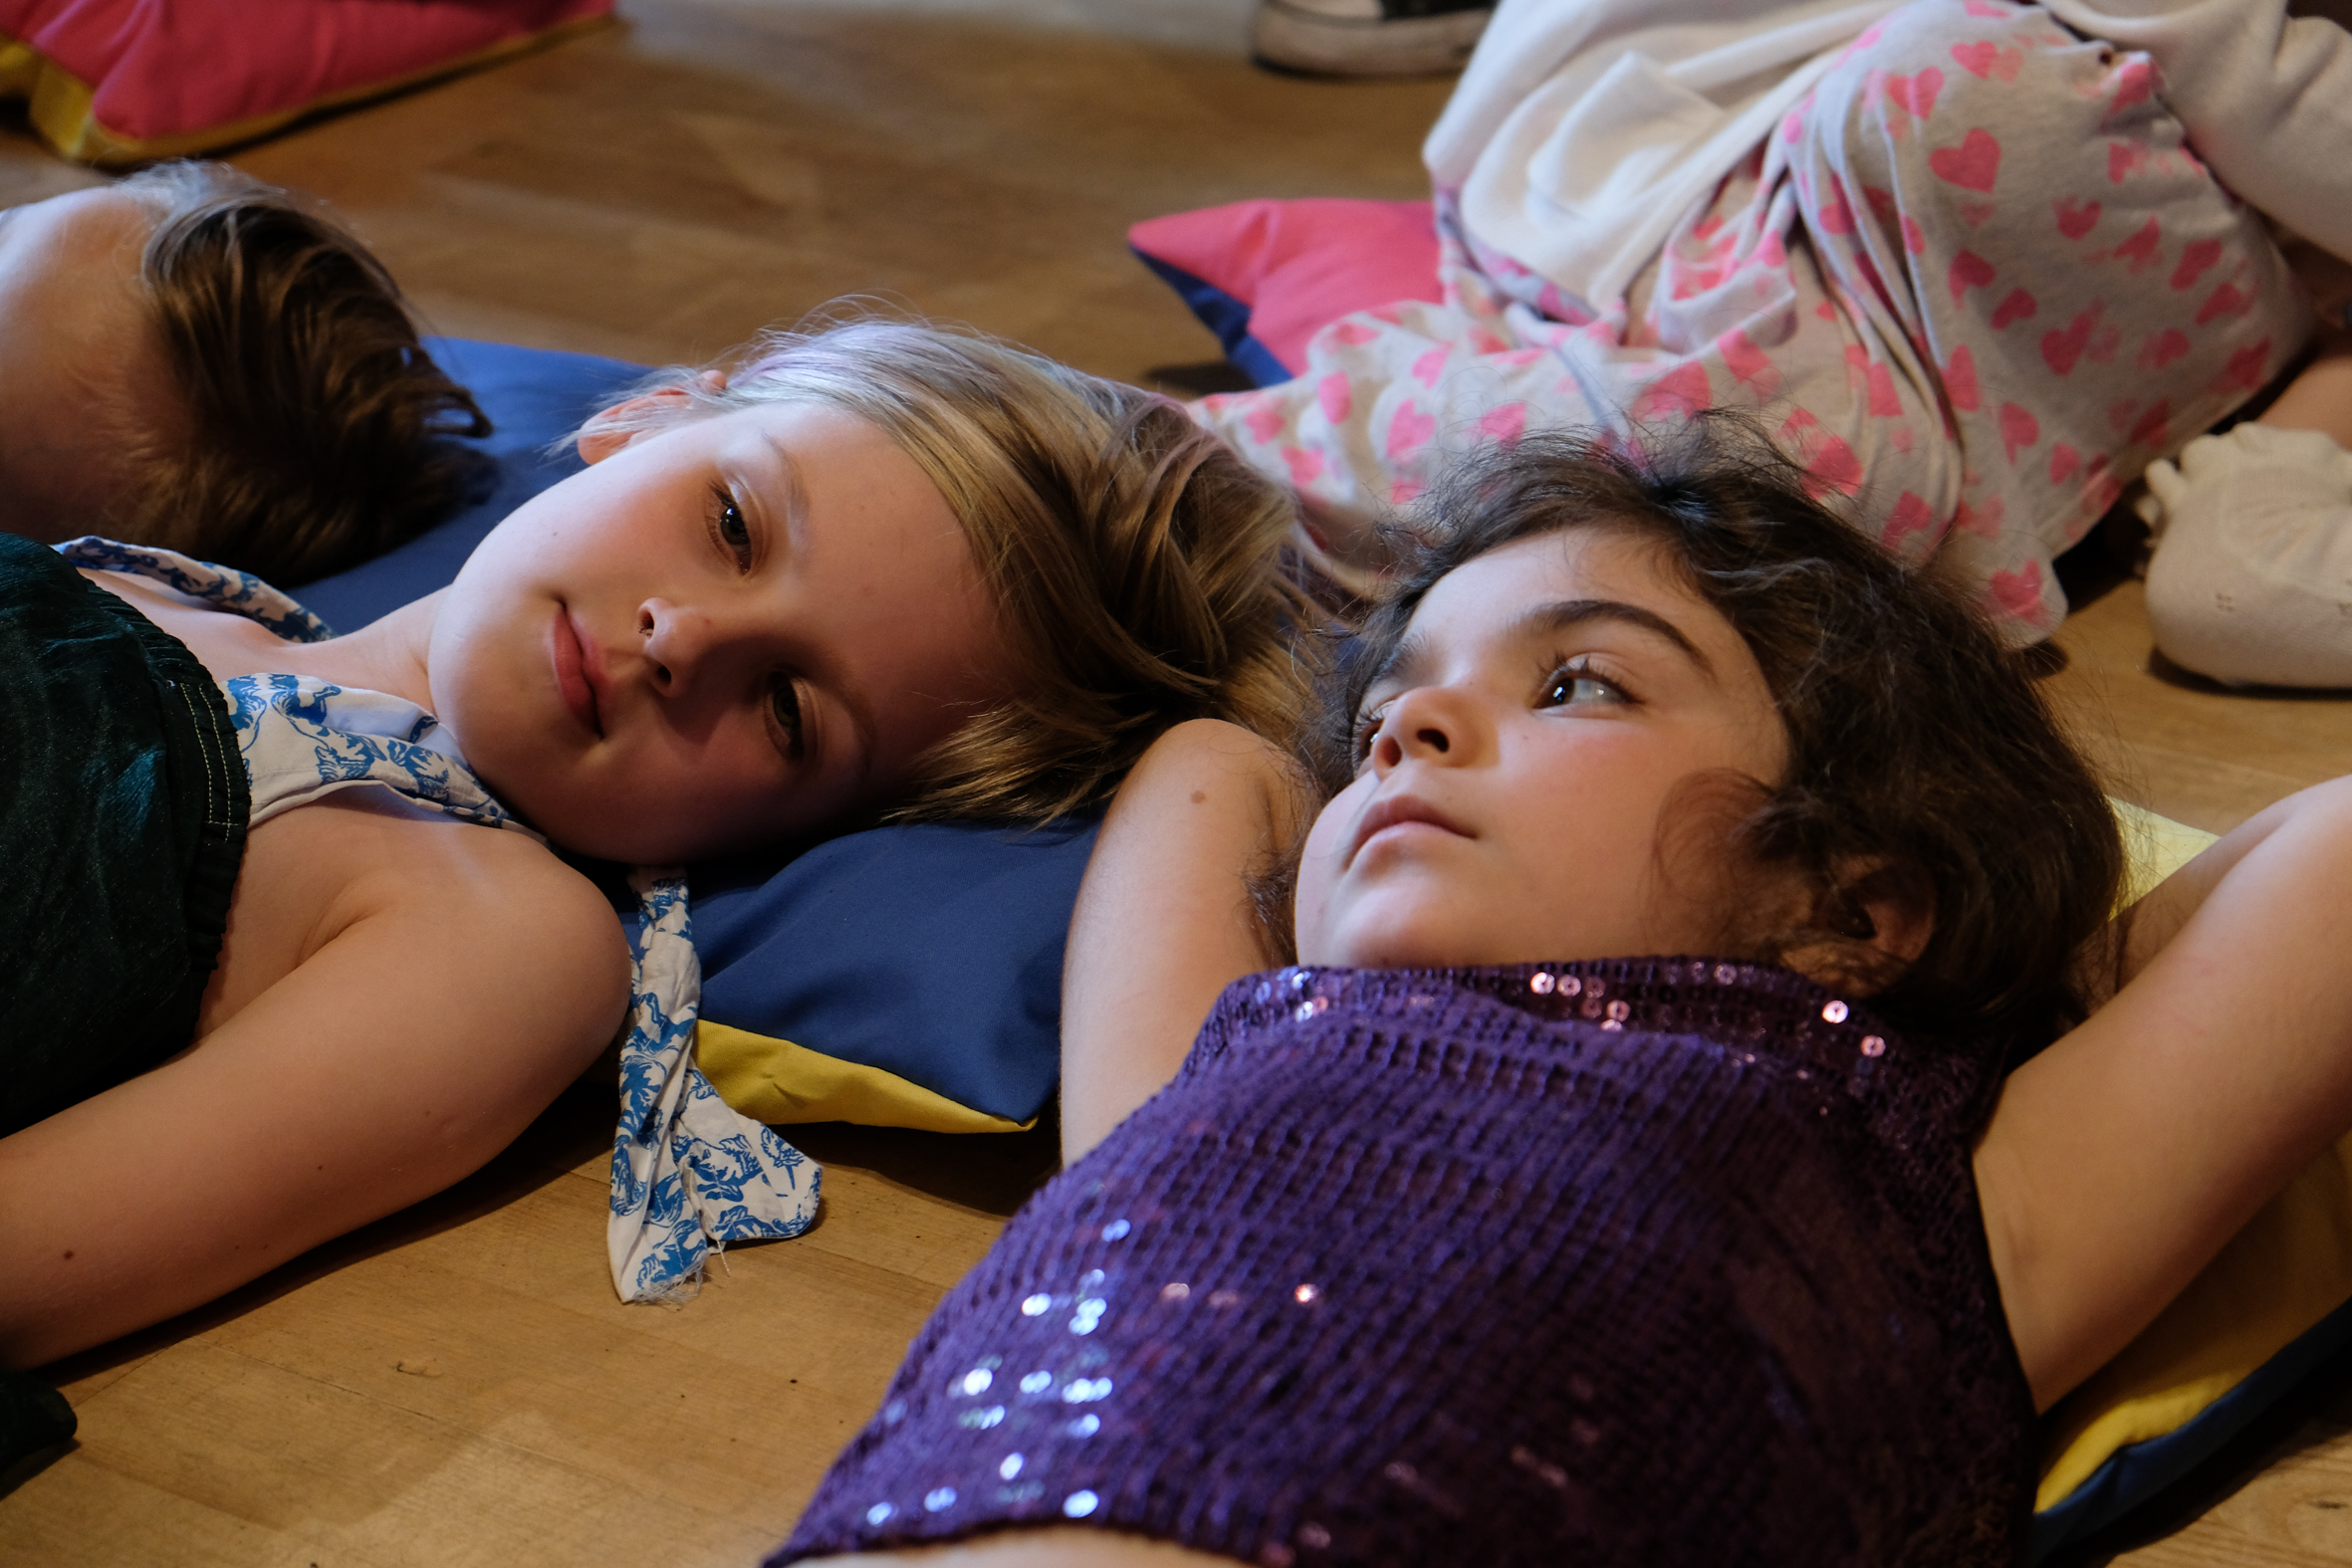 Ruya and Tillie relaxing